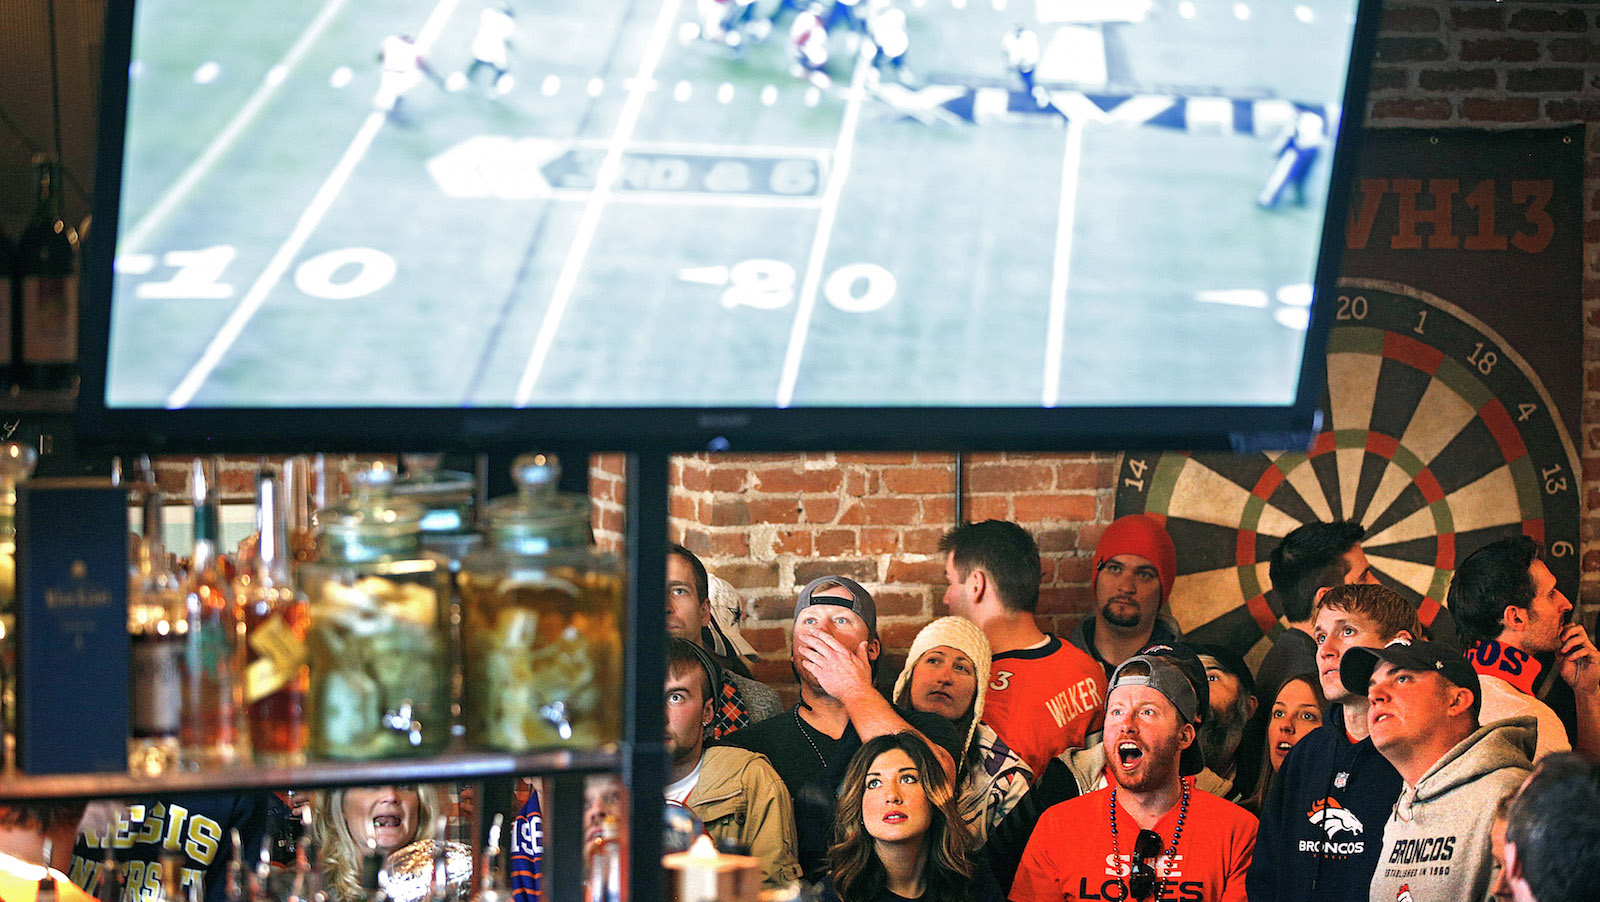 Denver Broncos fans react to a play while watching their team's NFL Super Bowl XLVIII football game against the Seattle Seahawks at the View House bar in Denver, Colorado February 2, 2014. REUTERS/Marc Piscotty   (UNITED STATES - Tags: SPORT FOOTBALL) - RTX185MN